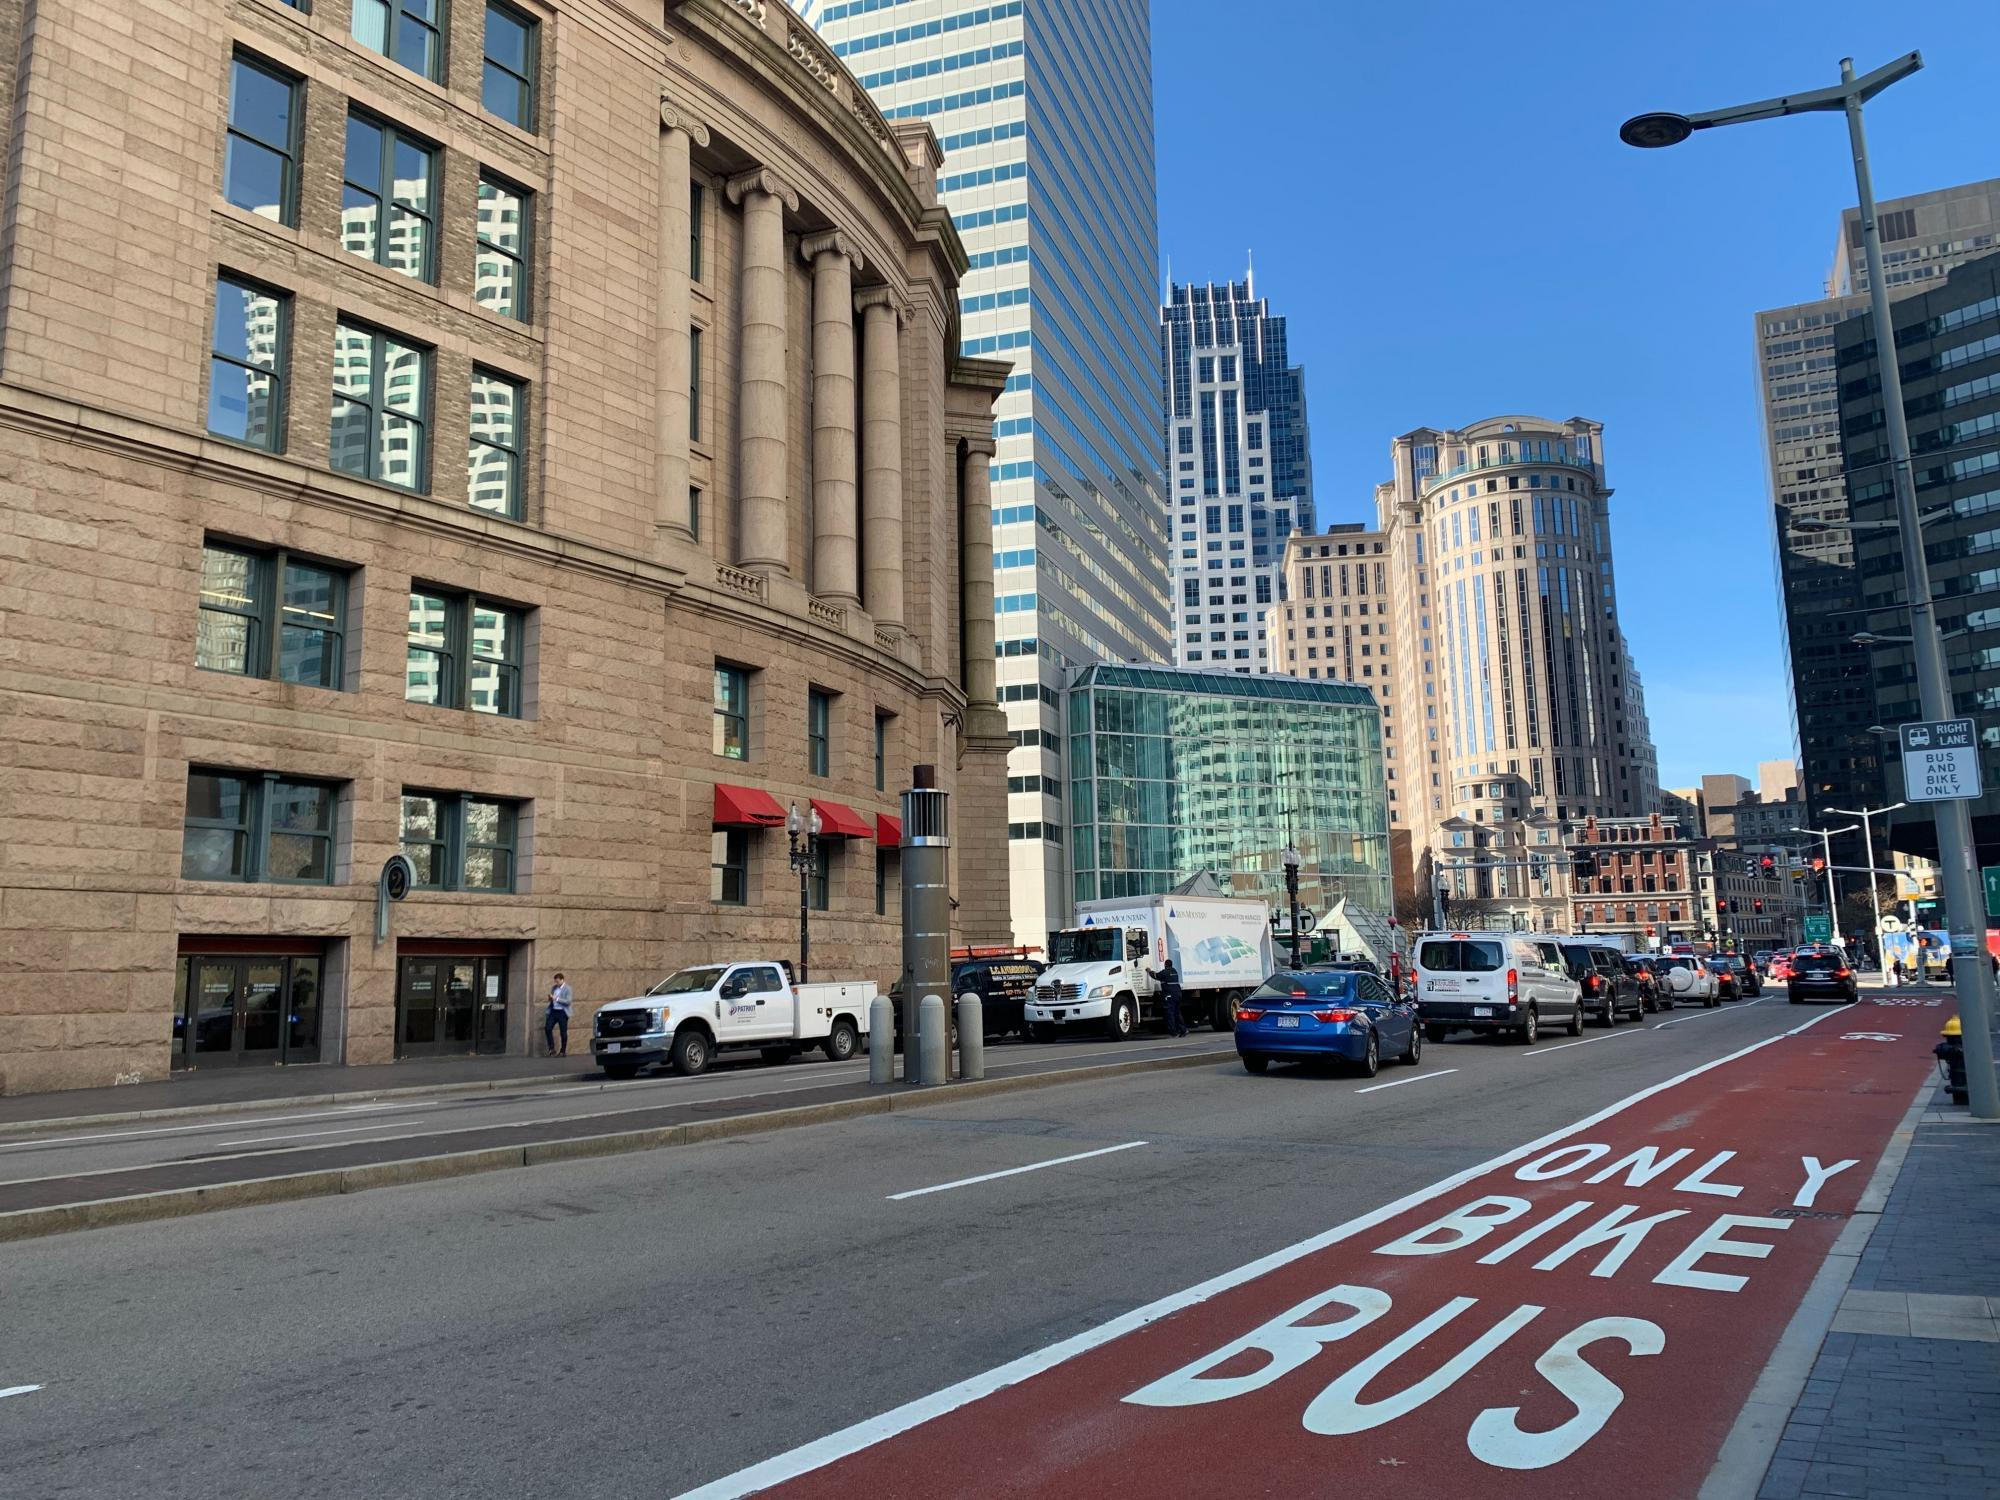 The new dedicated bus lane on Summer Street outside of South Station